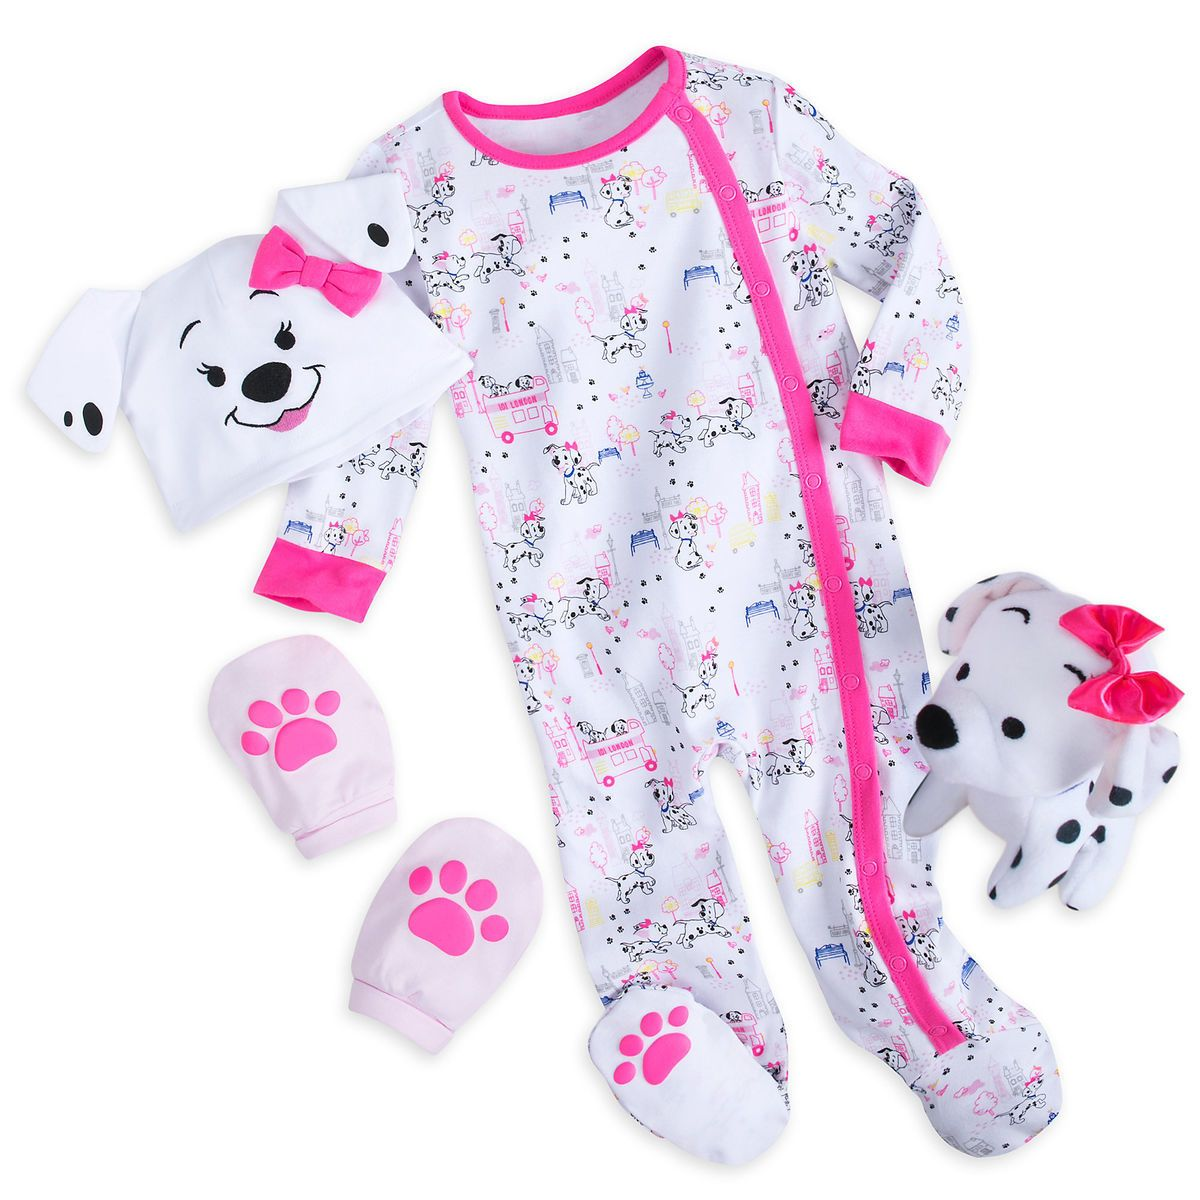 101 Dalmatians Gift Set For Baby Pink Pink Baby Gifts Baby Girl Clothes Baby Kids Clothes